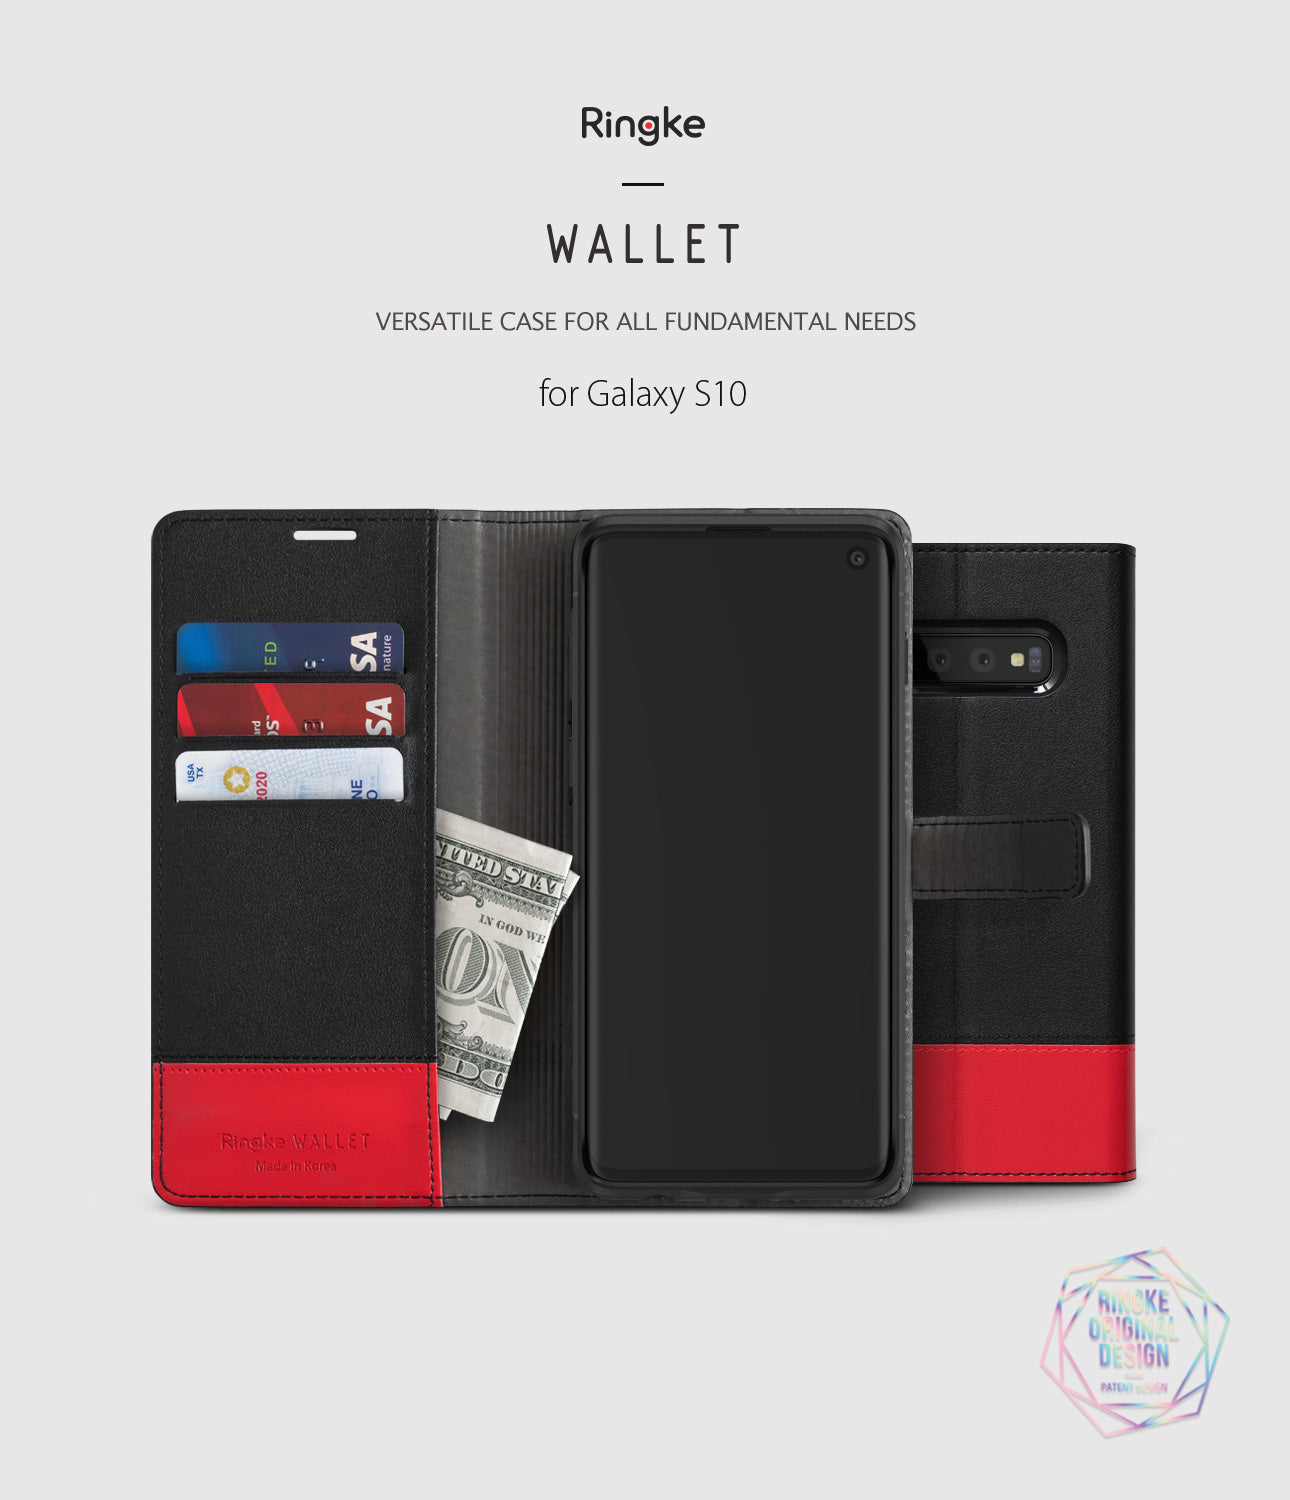 galaxy s10 wallet black and red